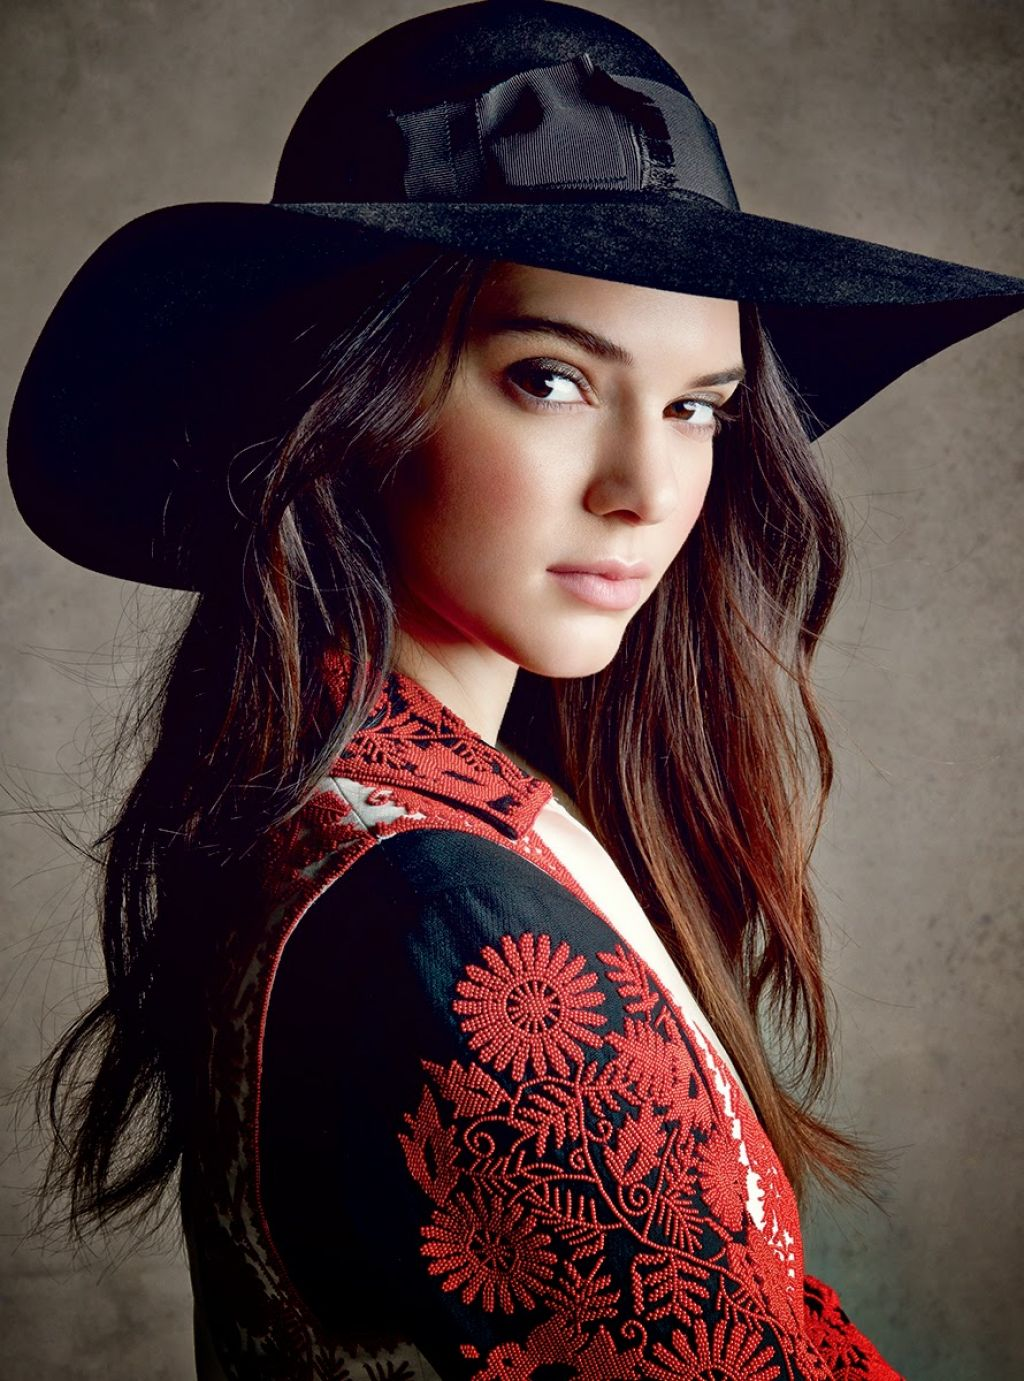 Kendall Jenner Photoshot for Vogue Magazine (US) December 2014